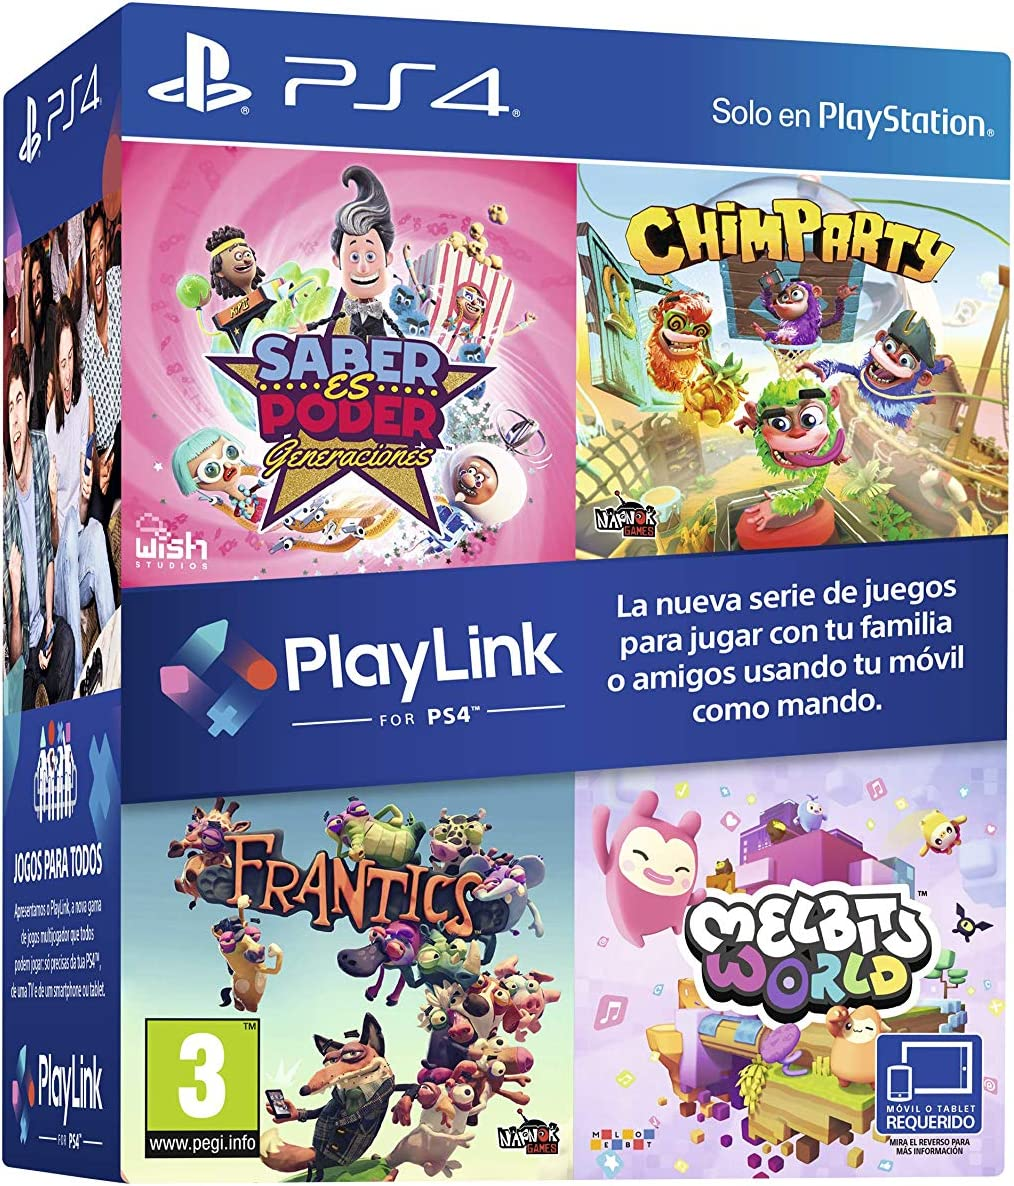 Pack Playlink: Saber es Poder + Chimparty + Frantics + Melbits: Amazon.es: Videojuegos